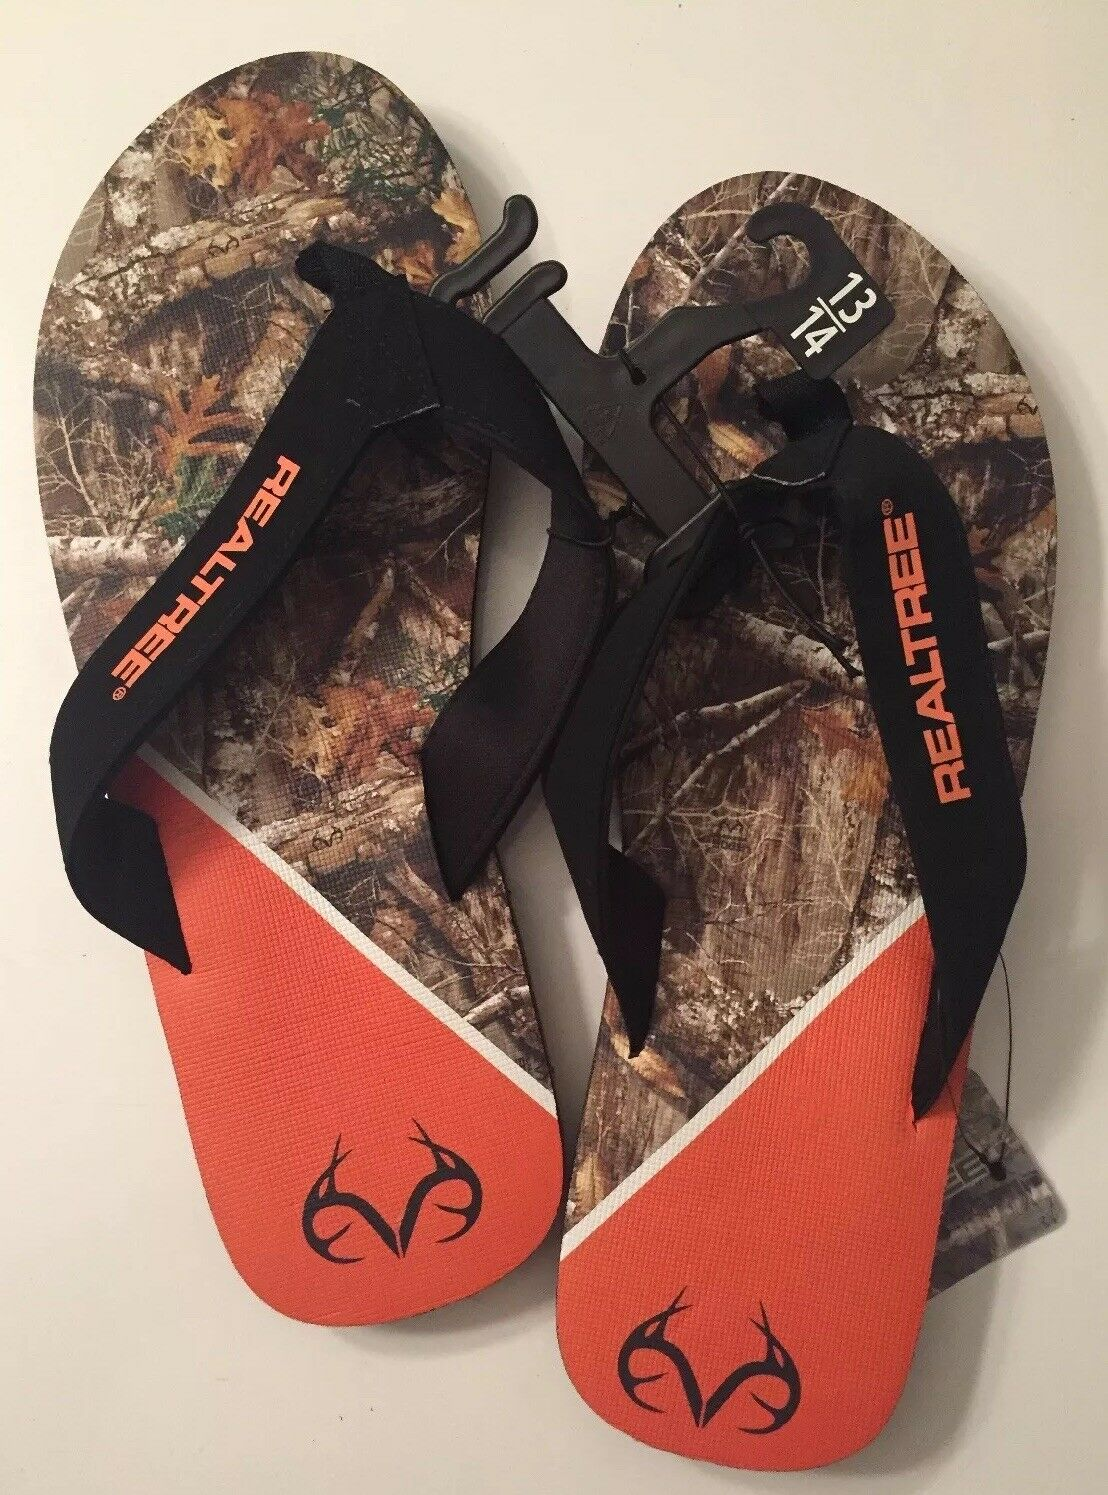 Realtree Size  Flip Flop Sandals Size Realtree 13-14 ed5a6c